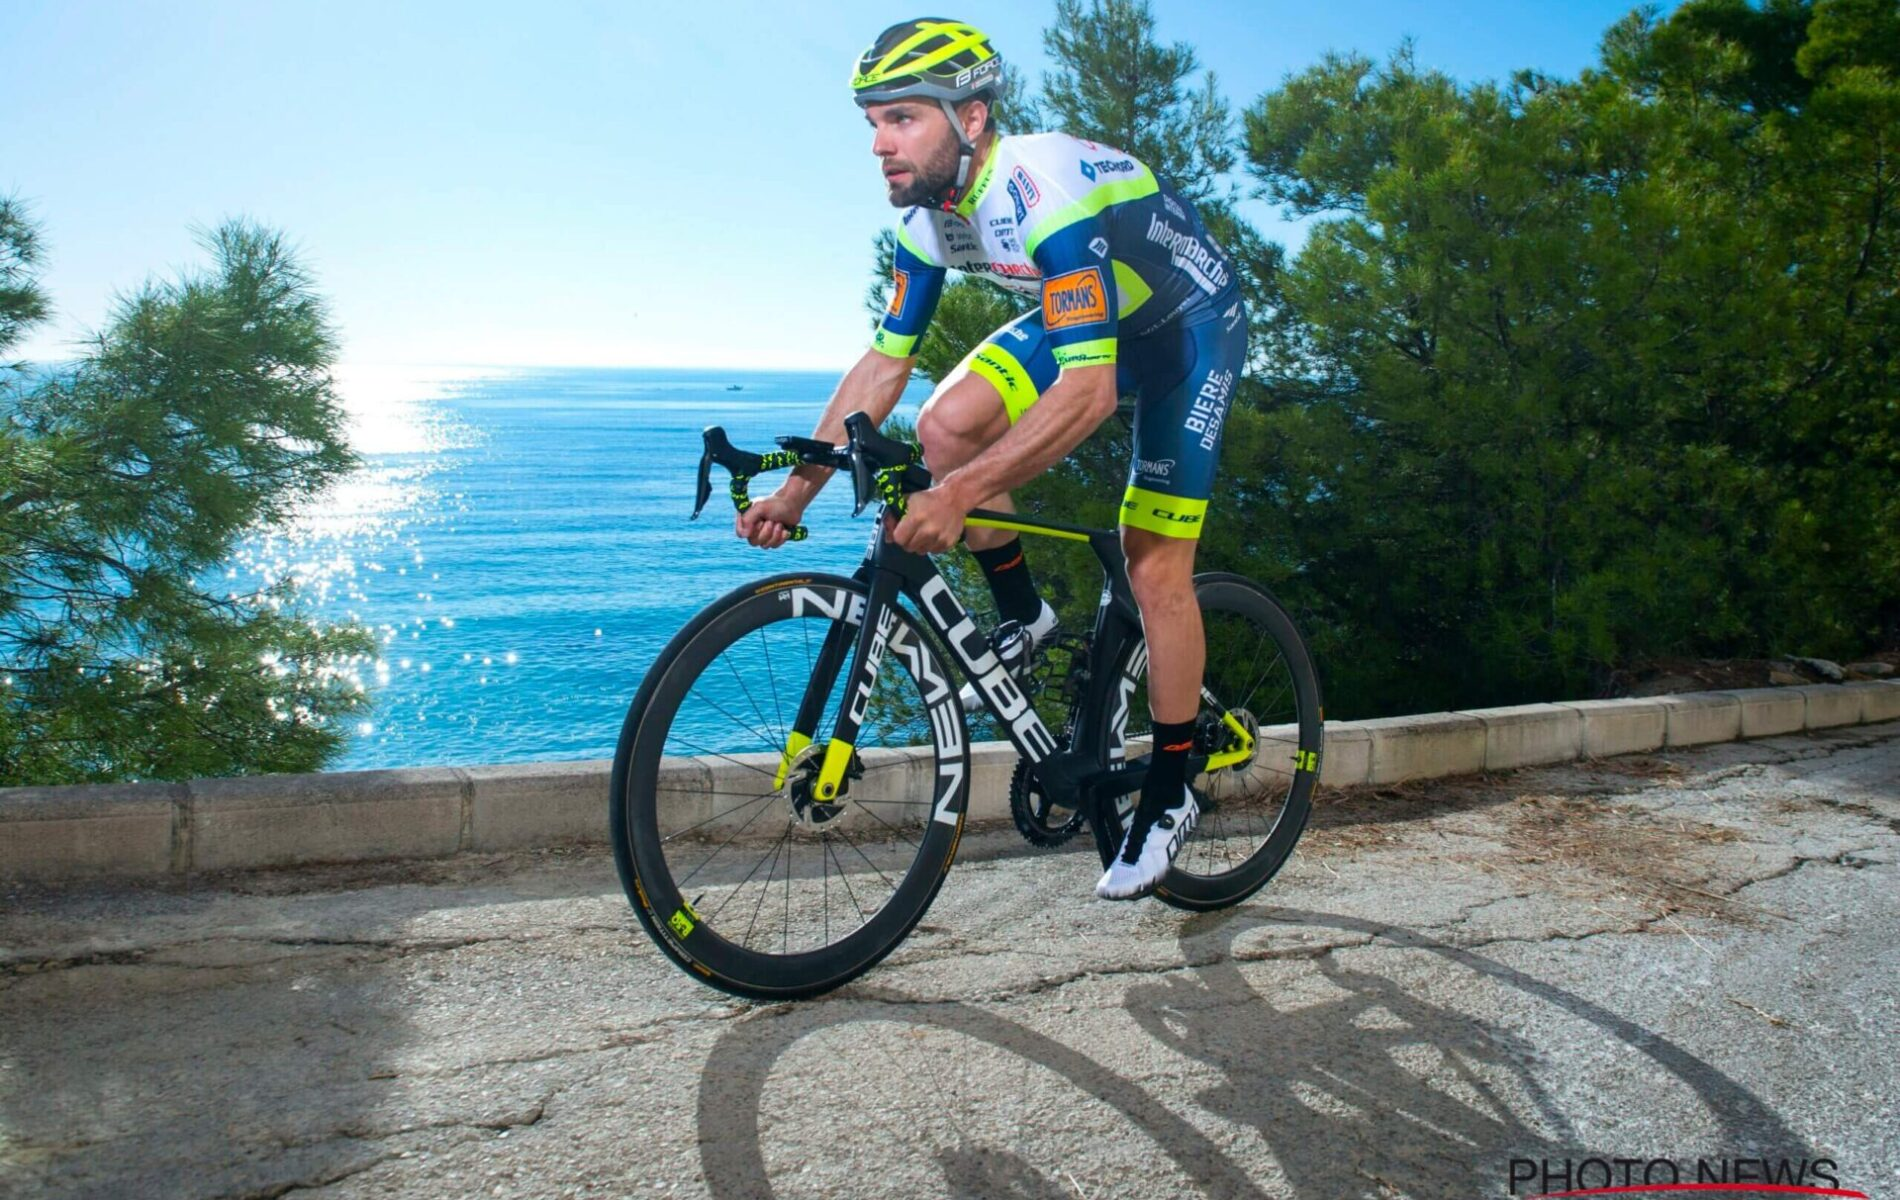 ALFAZ DEL PI, SPAIN - JANUARY 15 : PASQUALON Andrea (ITA) of Intermarche-Wanty-Gobert Materiaux Pro Cycling Team pictured during a photo shoot session at the Intermarche-Wanty-Gobert Materiaux Pro Cycling Team 2021 winter training camp on January 15, 2021 in Alfaz Del Pi, Spain, 15/01/2021 ( Photo by Vincent Kalut / Photonews